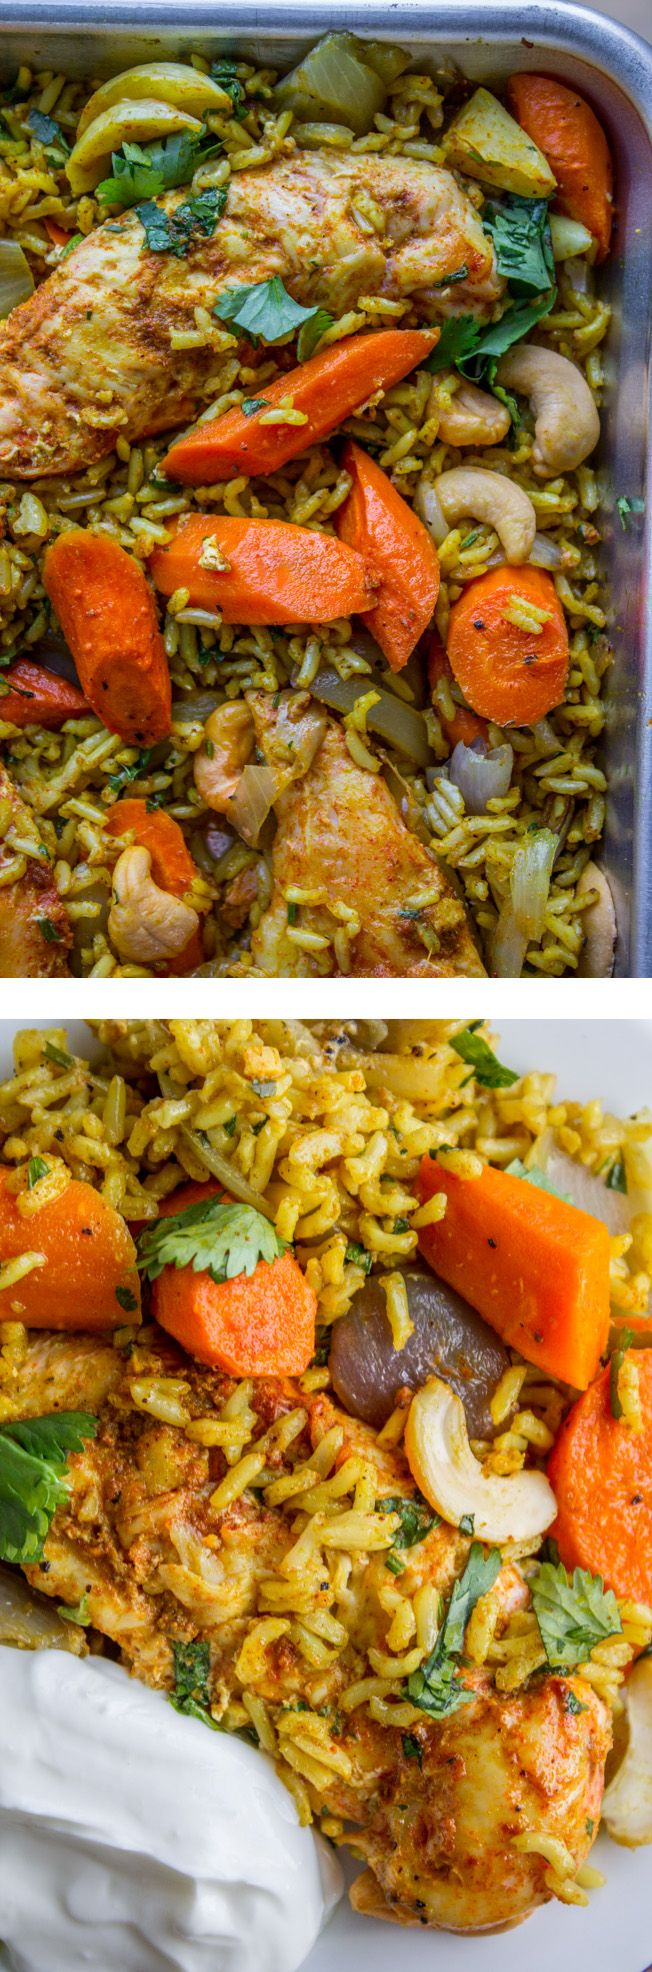 Sheet Pan Curry Chicken and Carrots with Basmati Rice (Biryani) from The Food Charlatan. This curry chicken and with carrots and basmati rice is made all on one sheet pan! It is so flavorful it will blow your mind. It's a perfect weeknight dinner for busy school days! It is so easy and has easy clean up too. Great back to school dinner! #curry #chicken